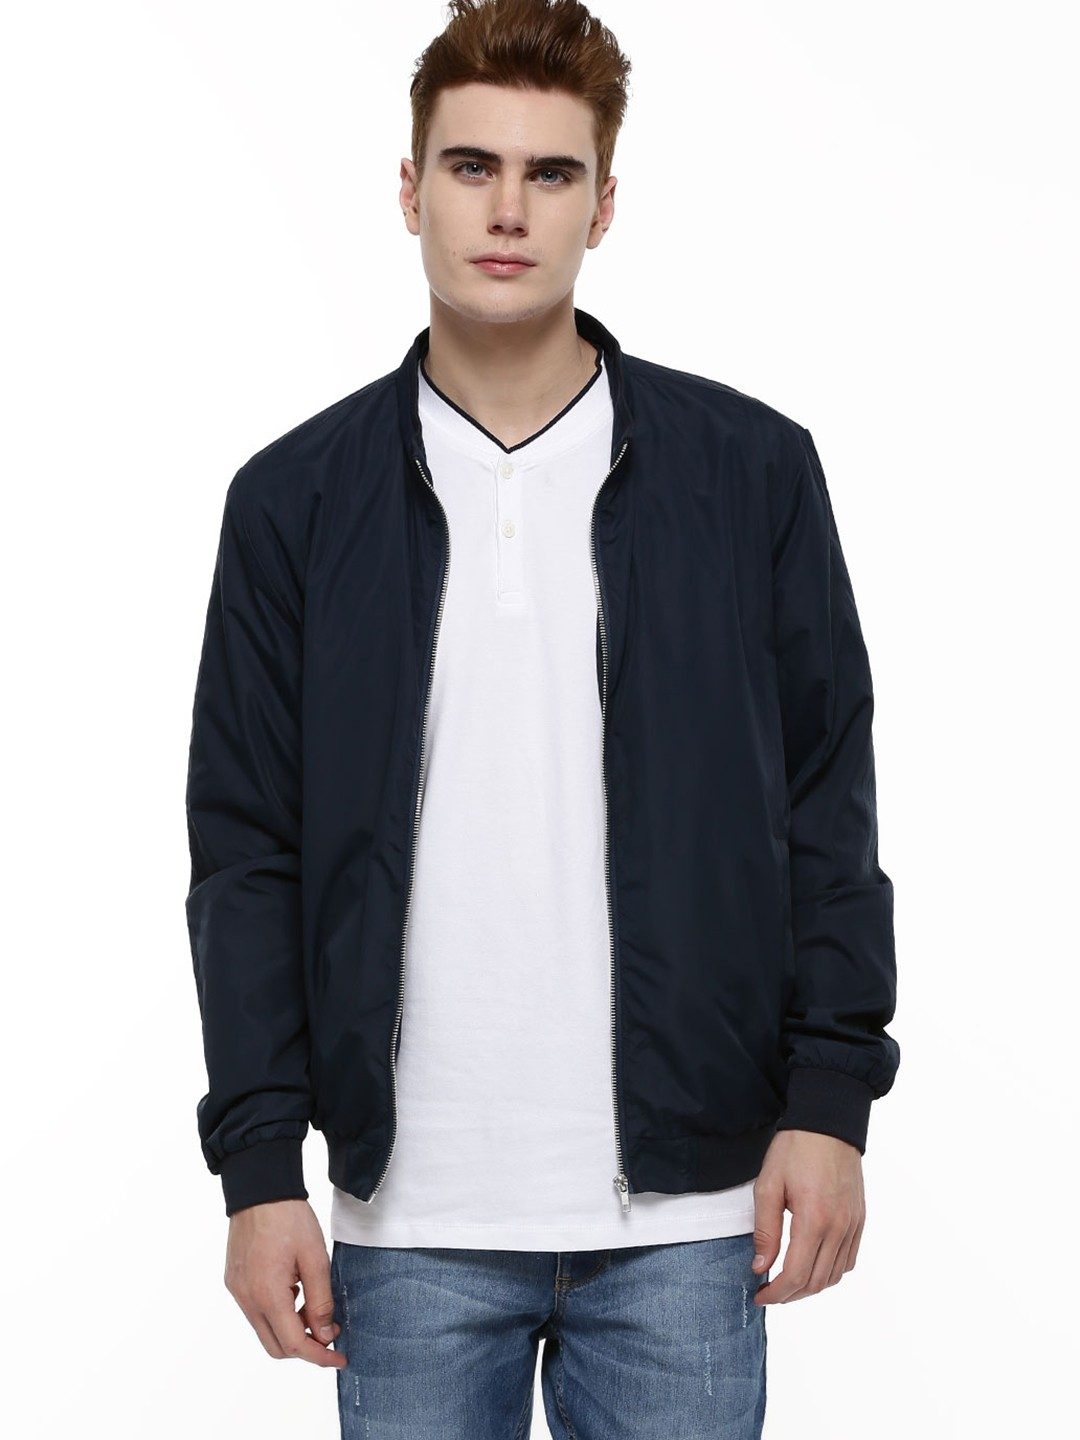 Buy SELECTED HOMME Bomber Jacket For Men - Men's Blue/Multi Bomber ...